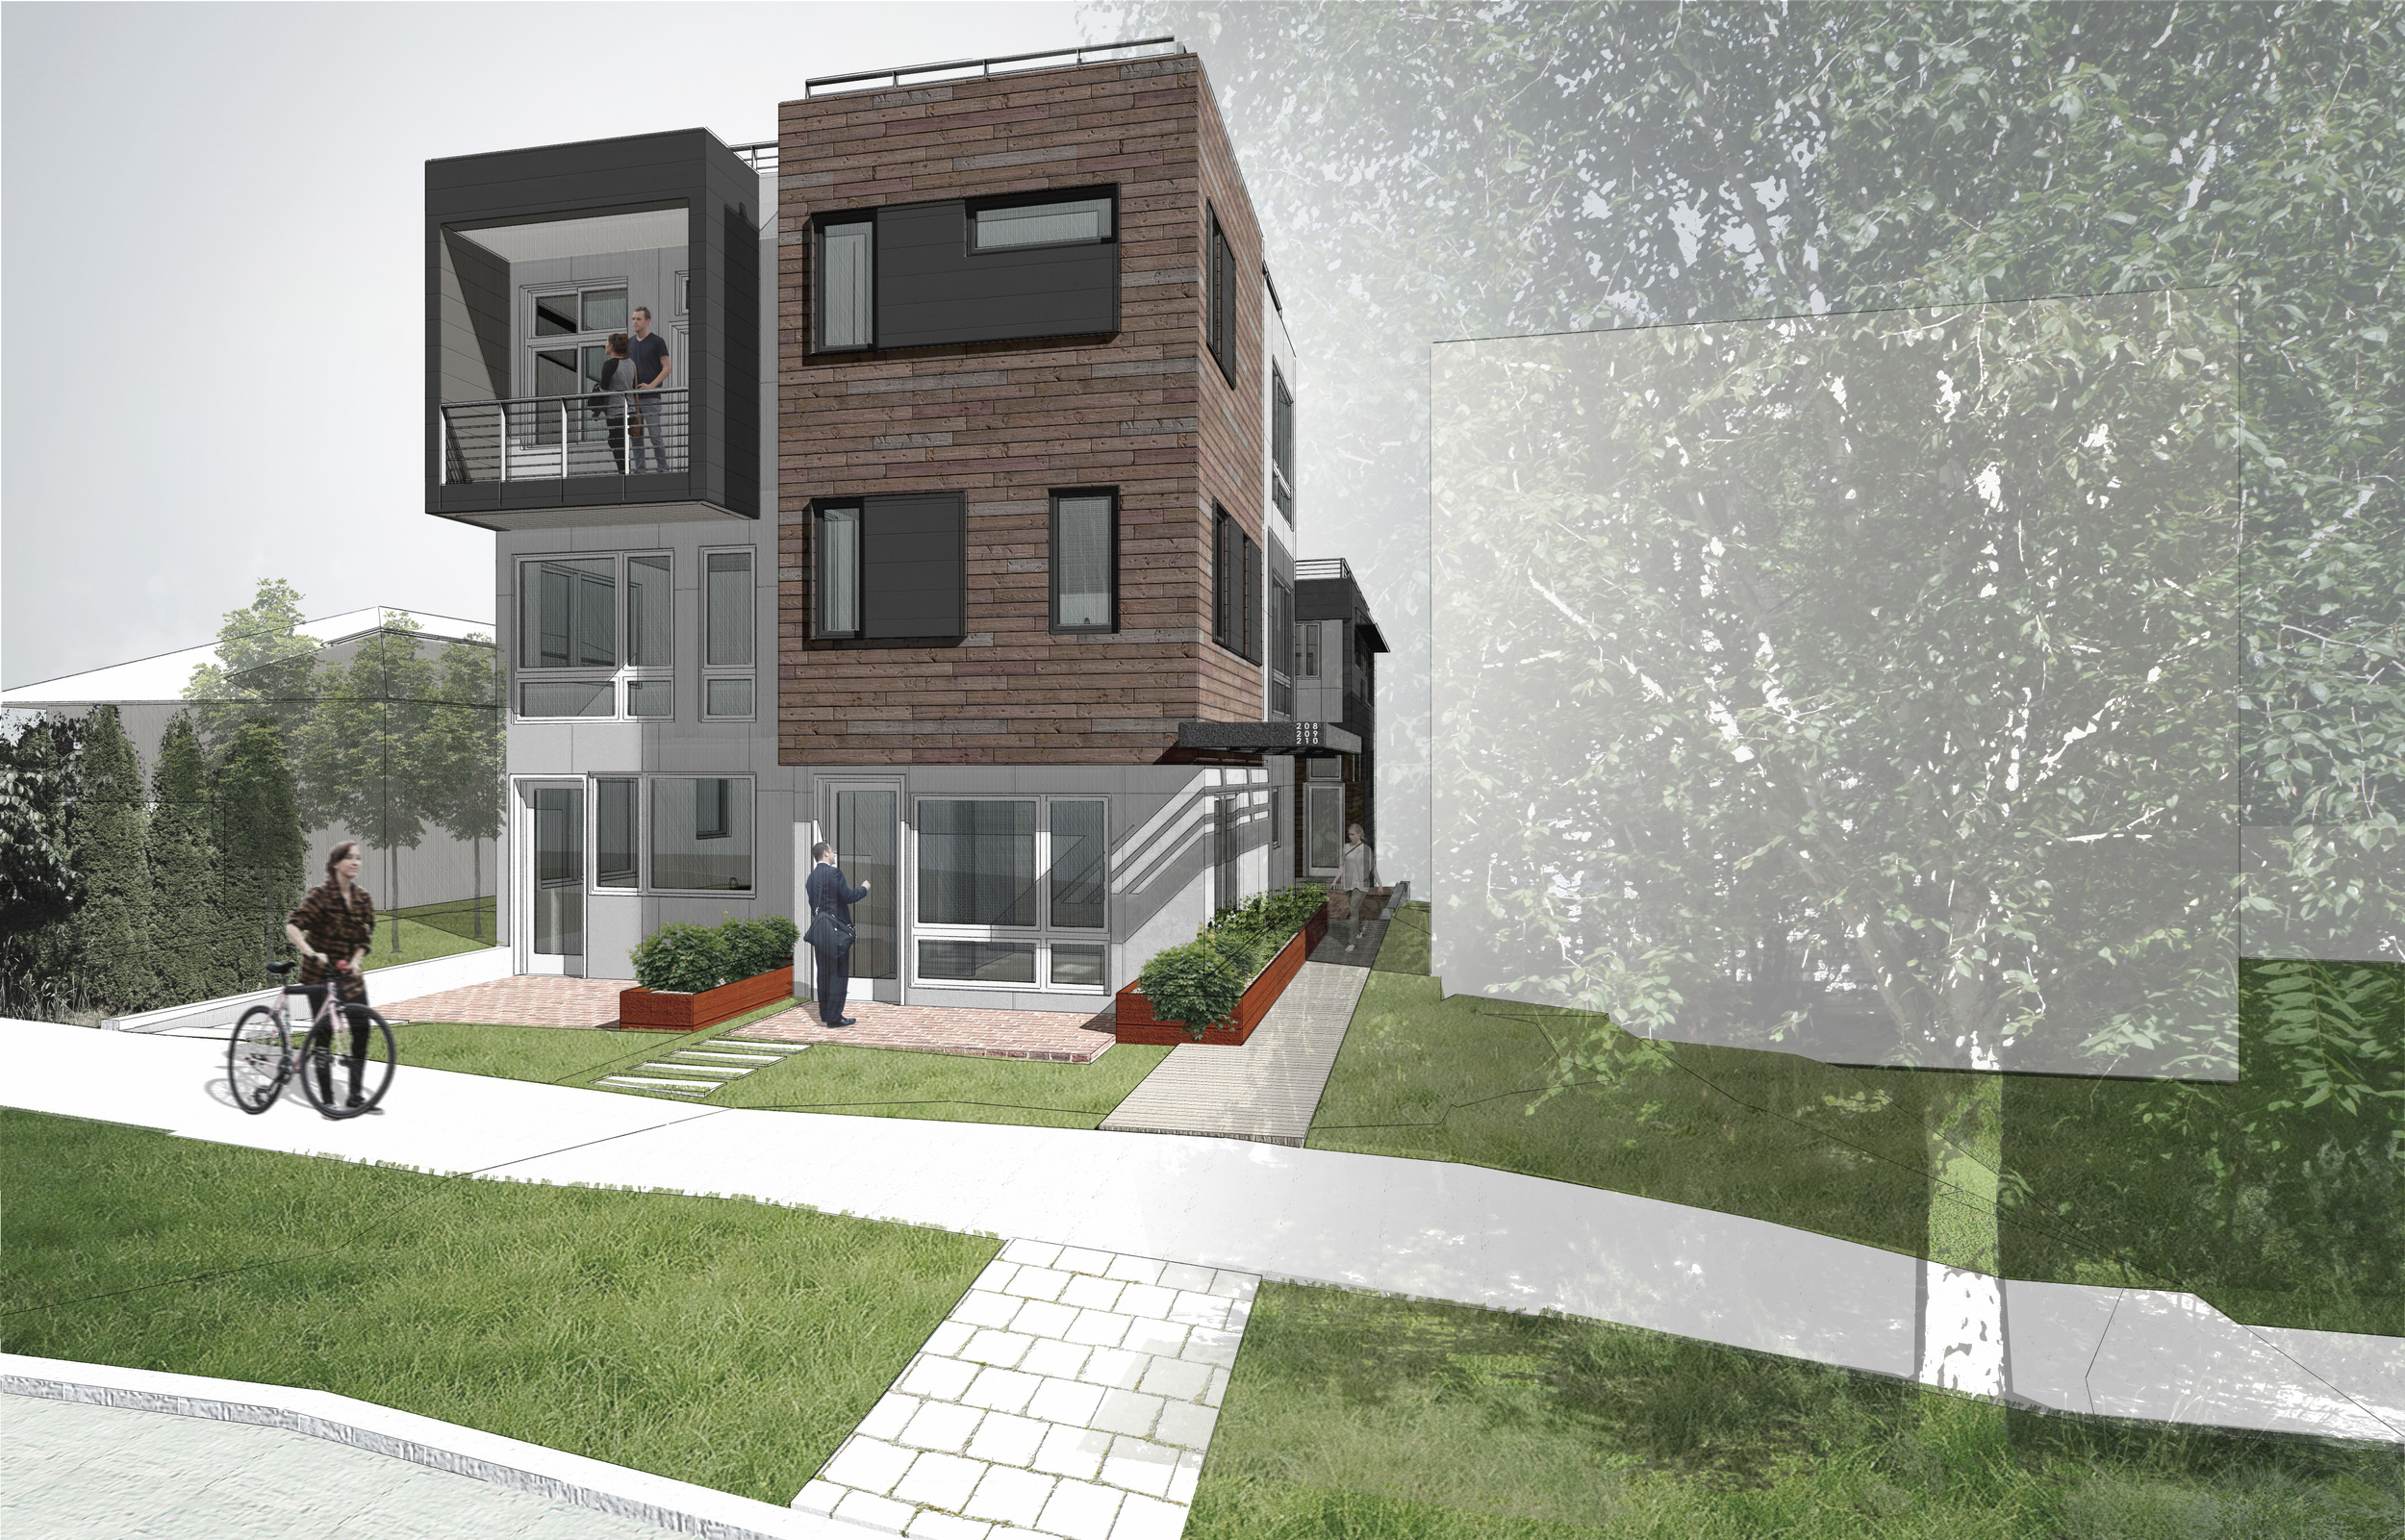 Two of the homes planned will be designed to meet Passive House standards. The current design also proposes reclaimed wood siding at the street facade.